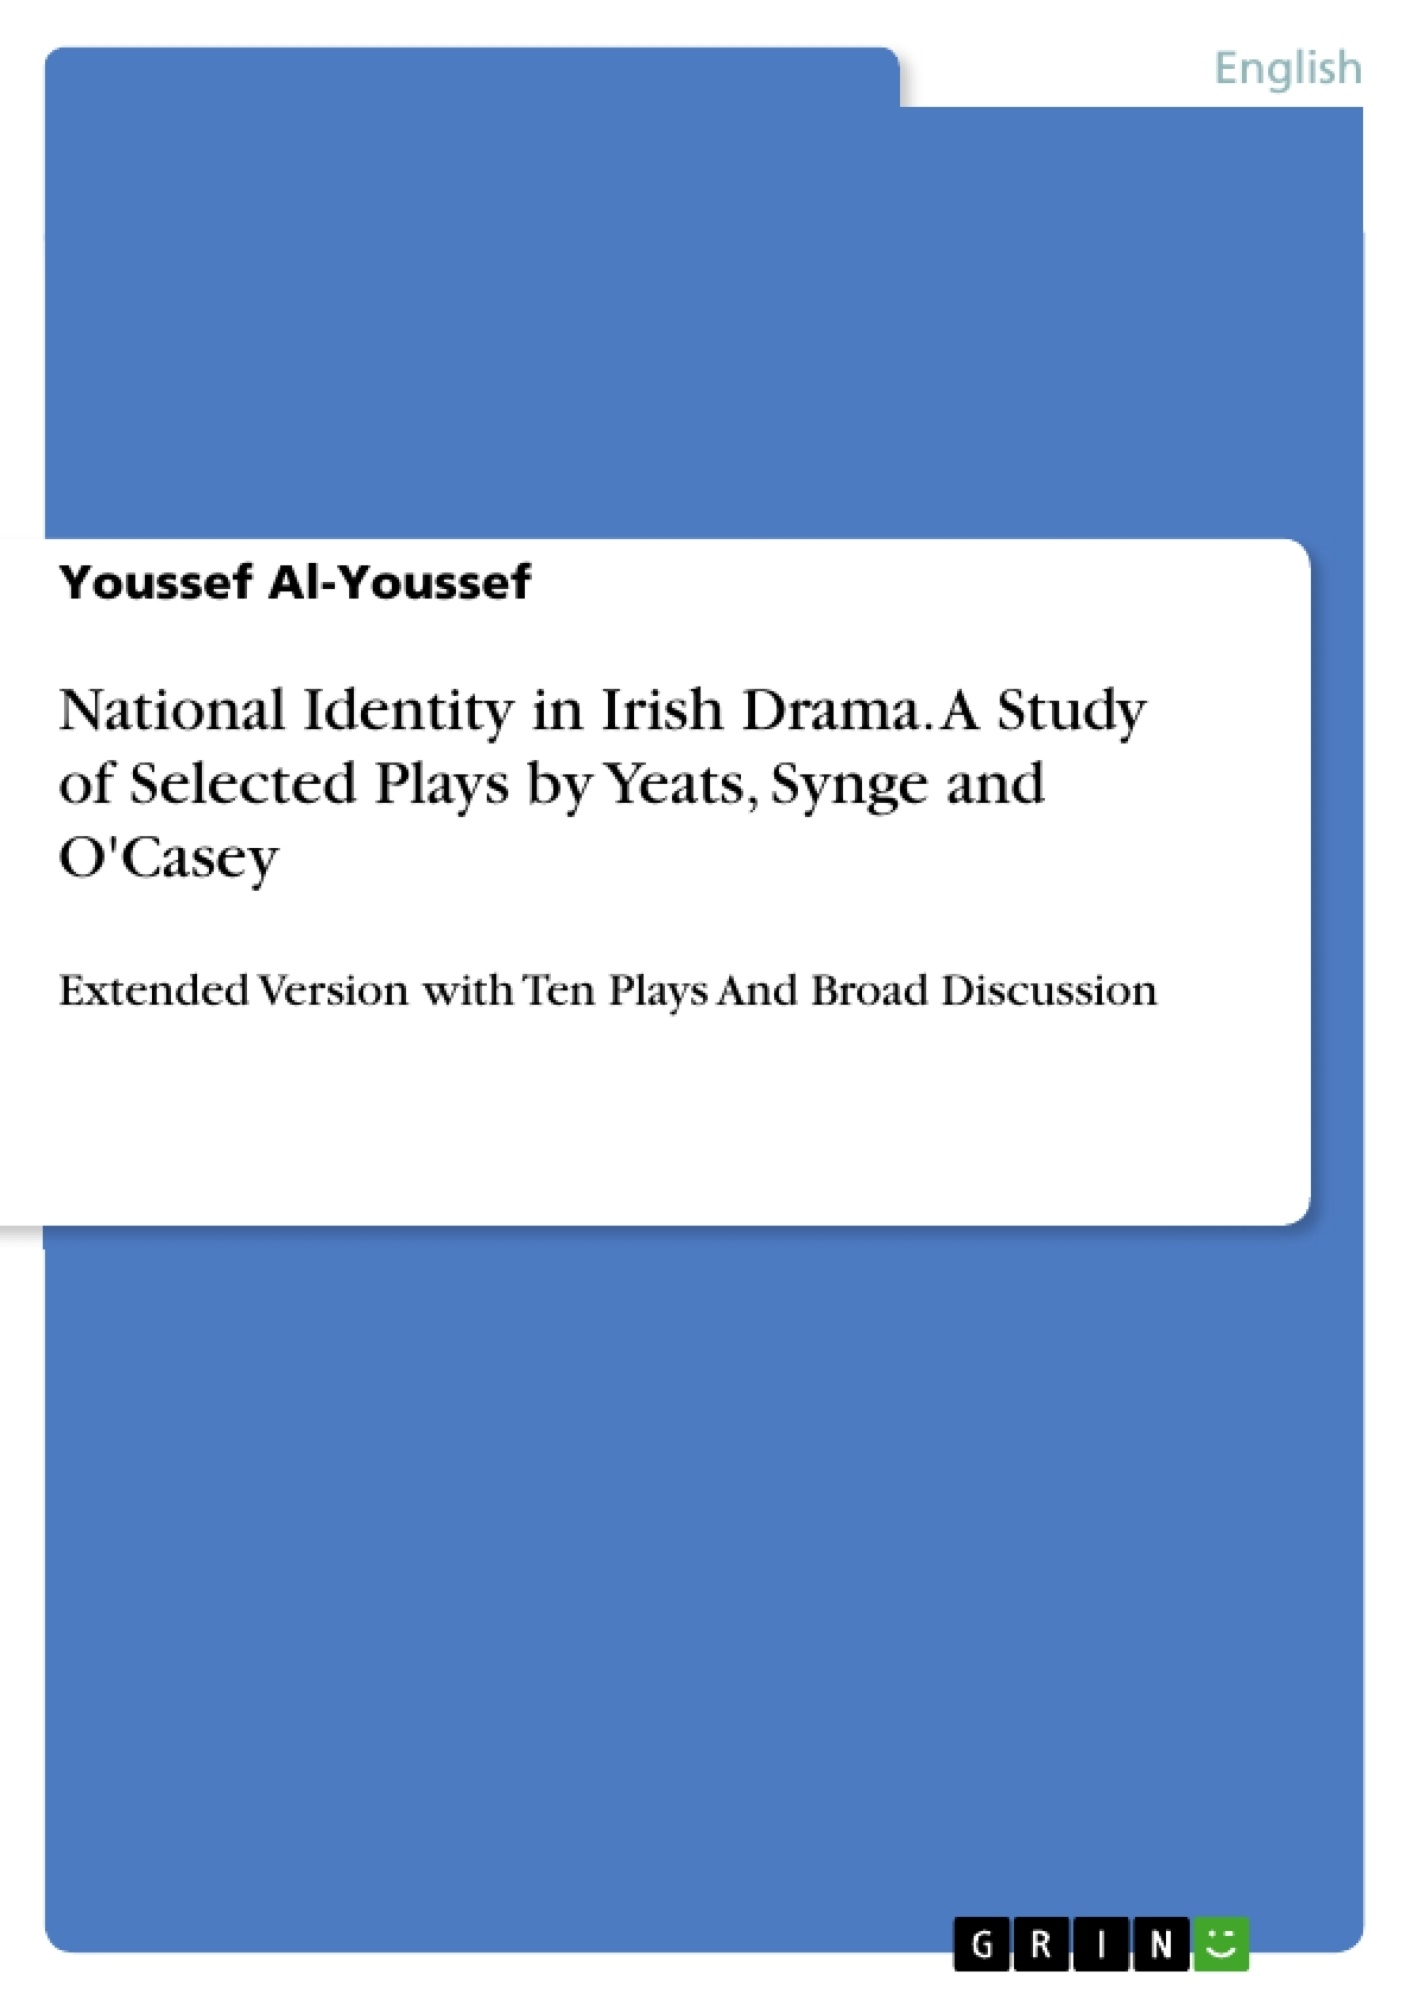 Title: National Identity in Irish Drama. A Study of Selected Plays by Yeats, Synge and O'Casey